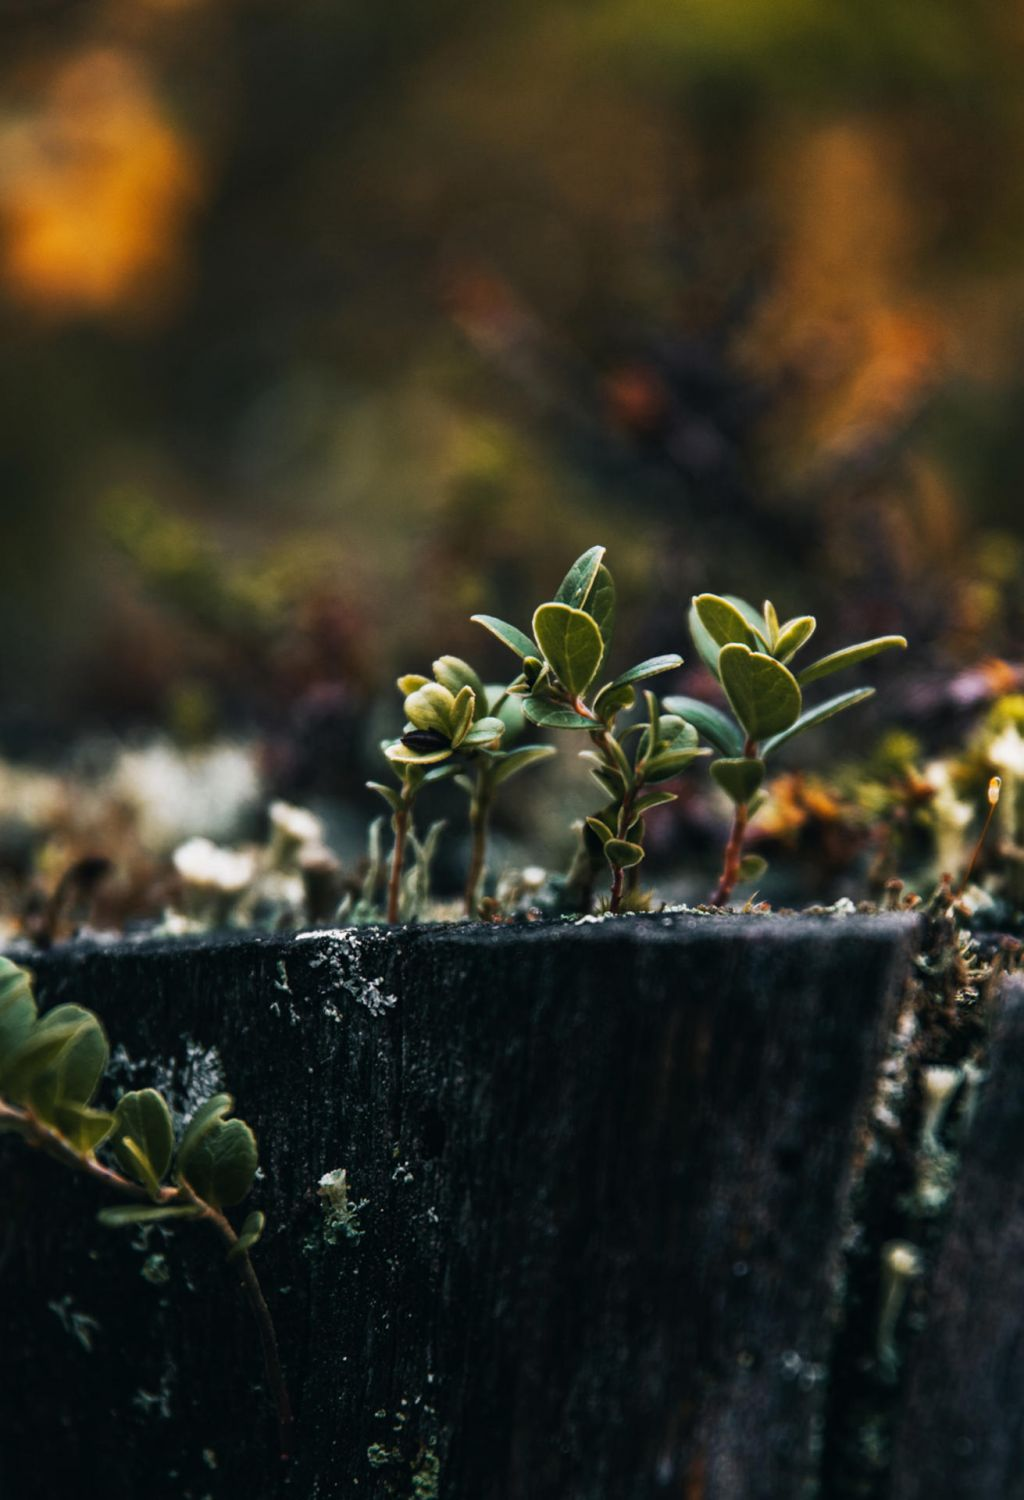 Close-up of a plant by Lapland nature photographer Marinella Himari